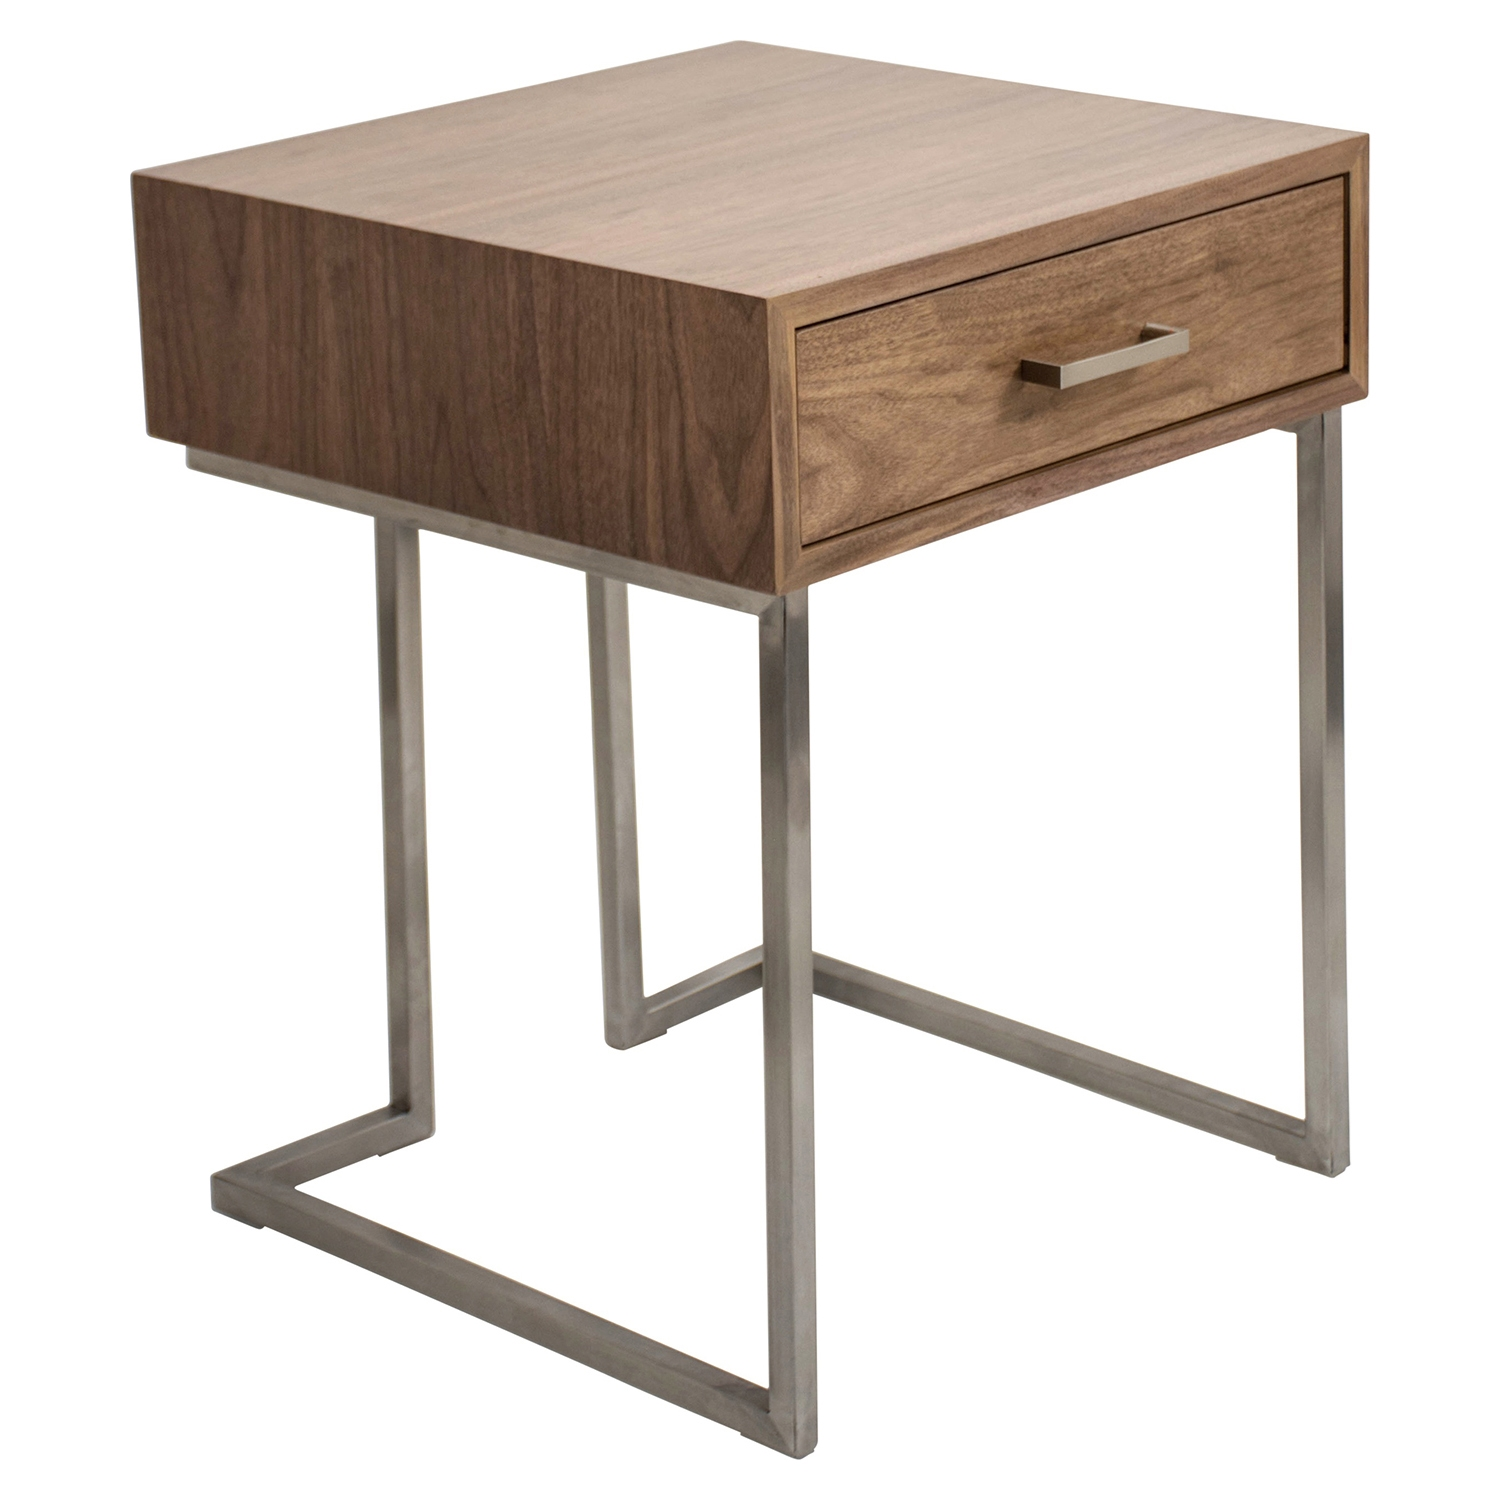 Roman End Table - Walnut, Stainless Steel Silver - LMS-TBE-RMN-WL-SS